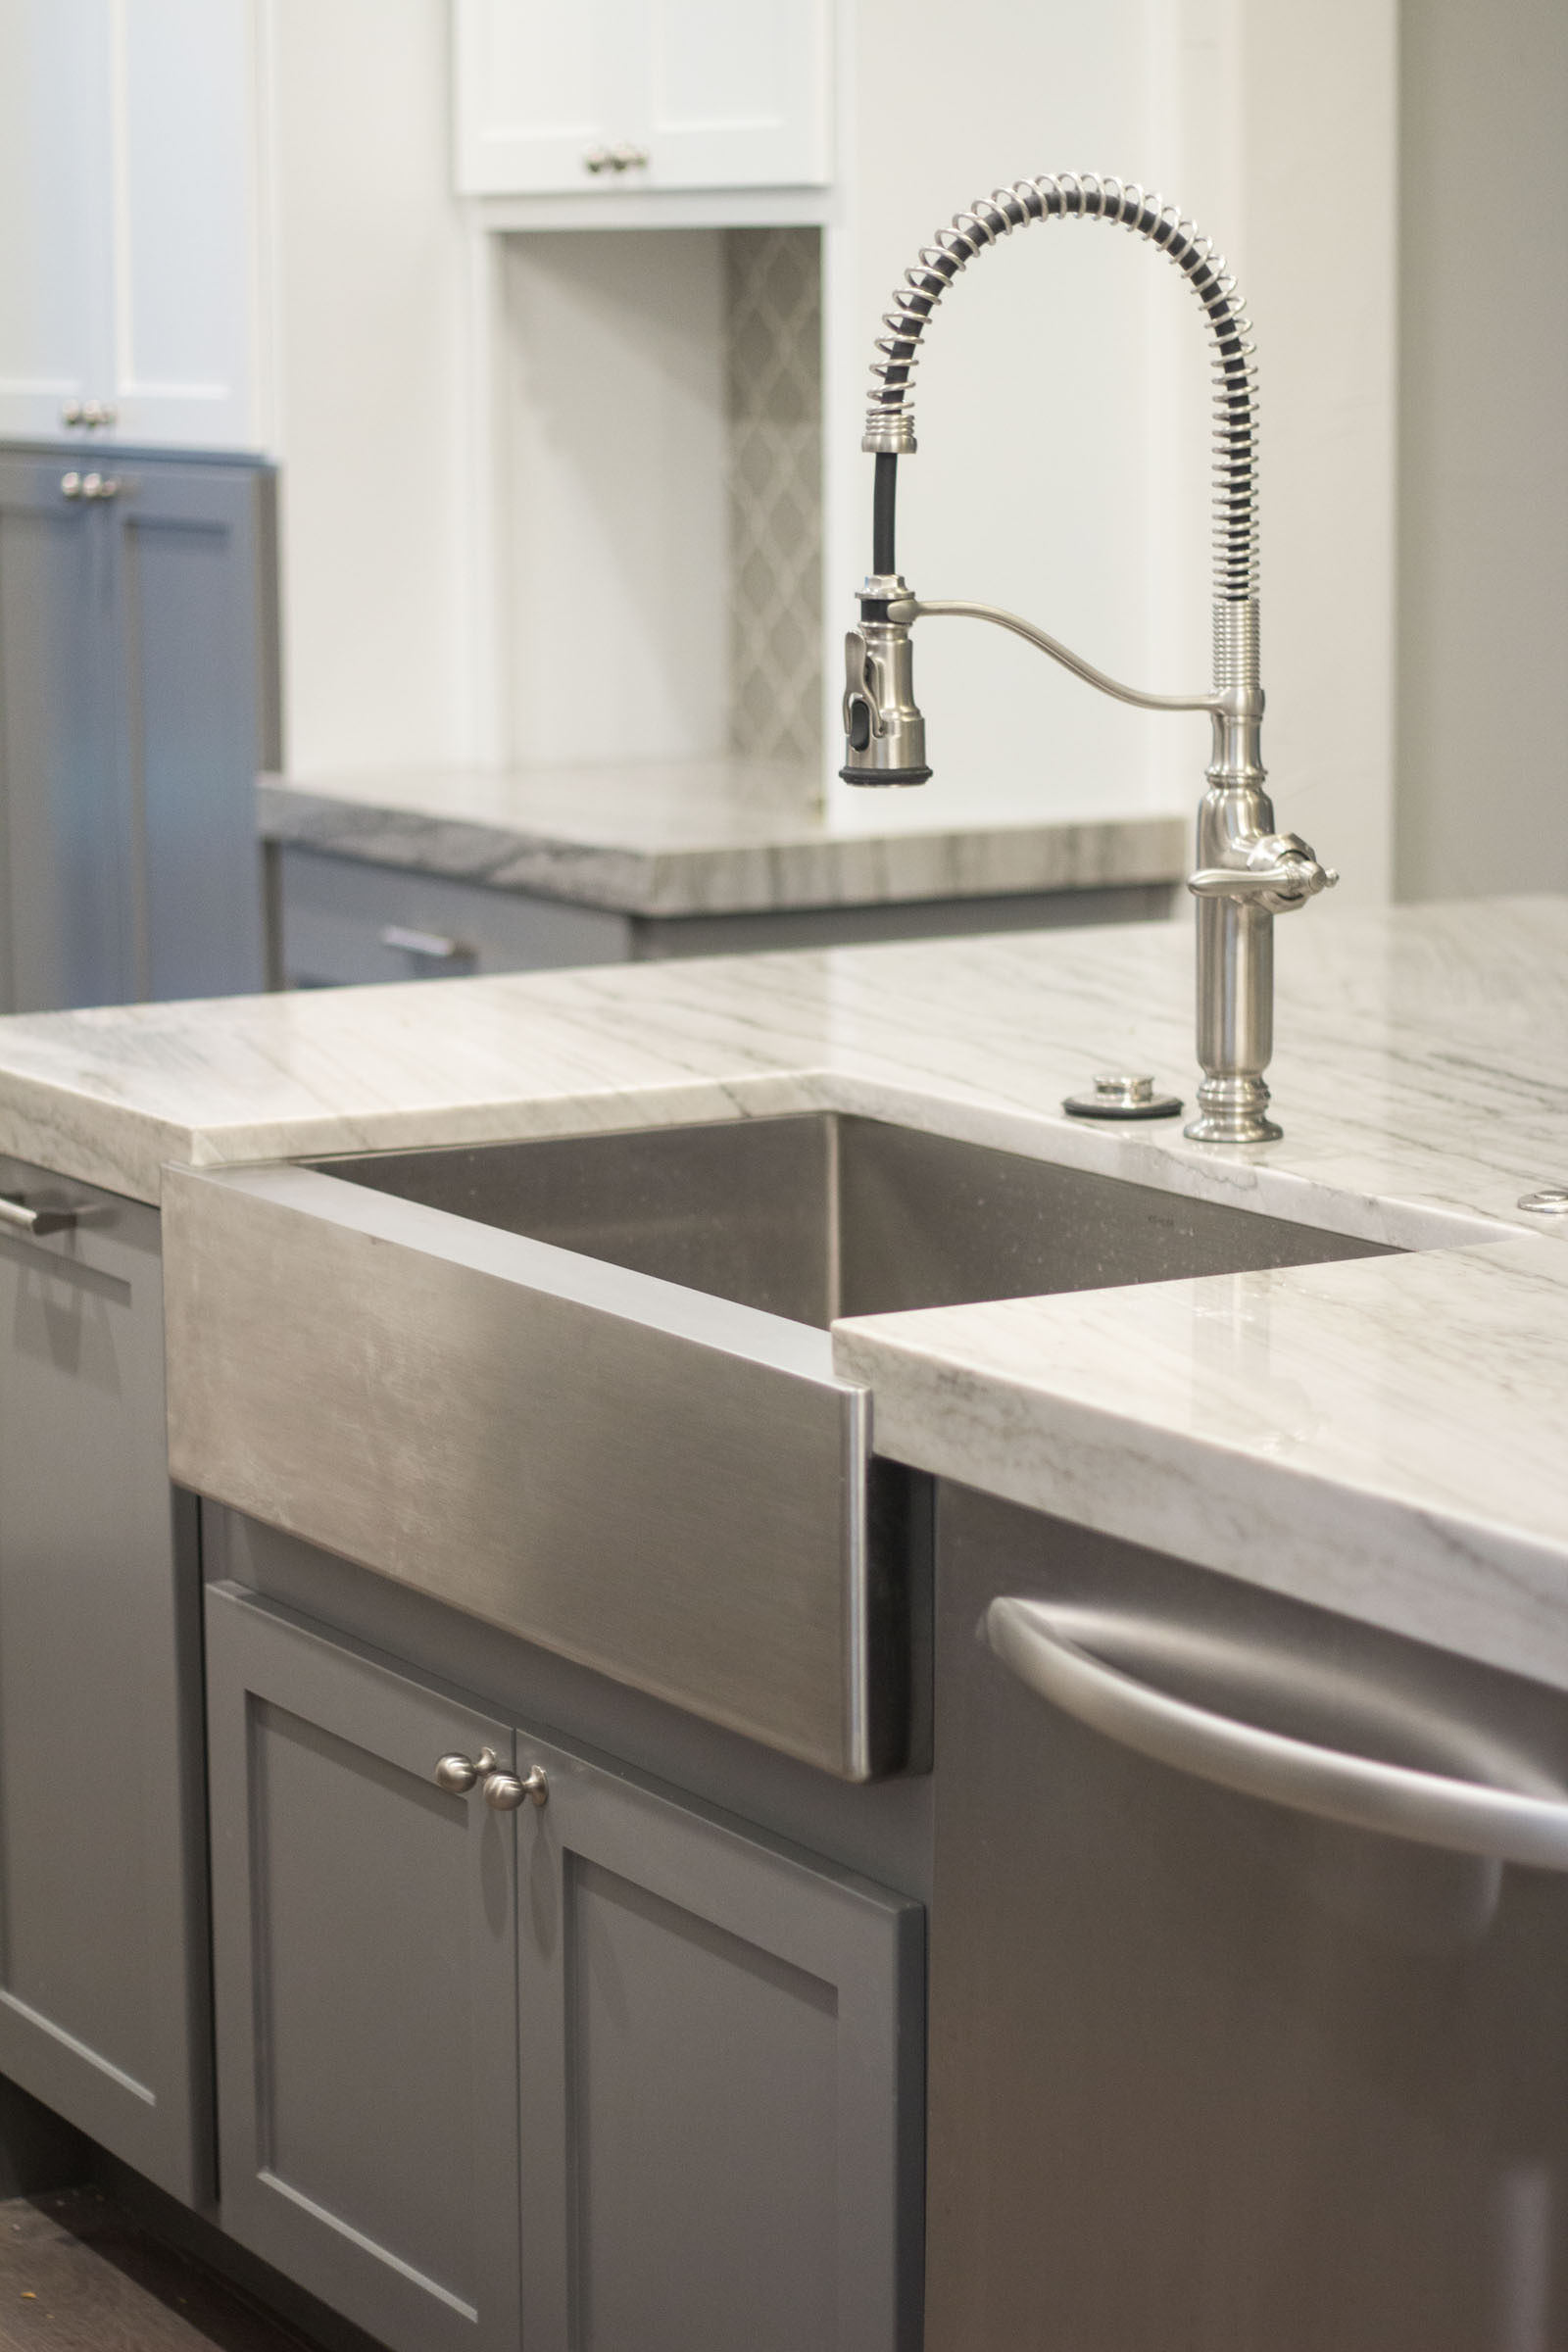 Kitchen island farmhouse sink, stainless steel, high arch faucet with pull down sprayer